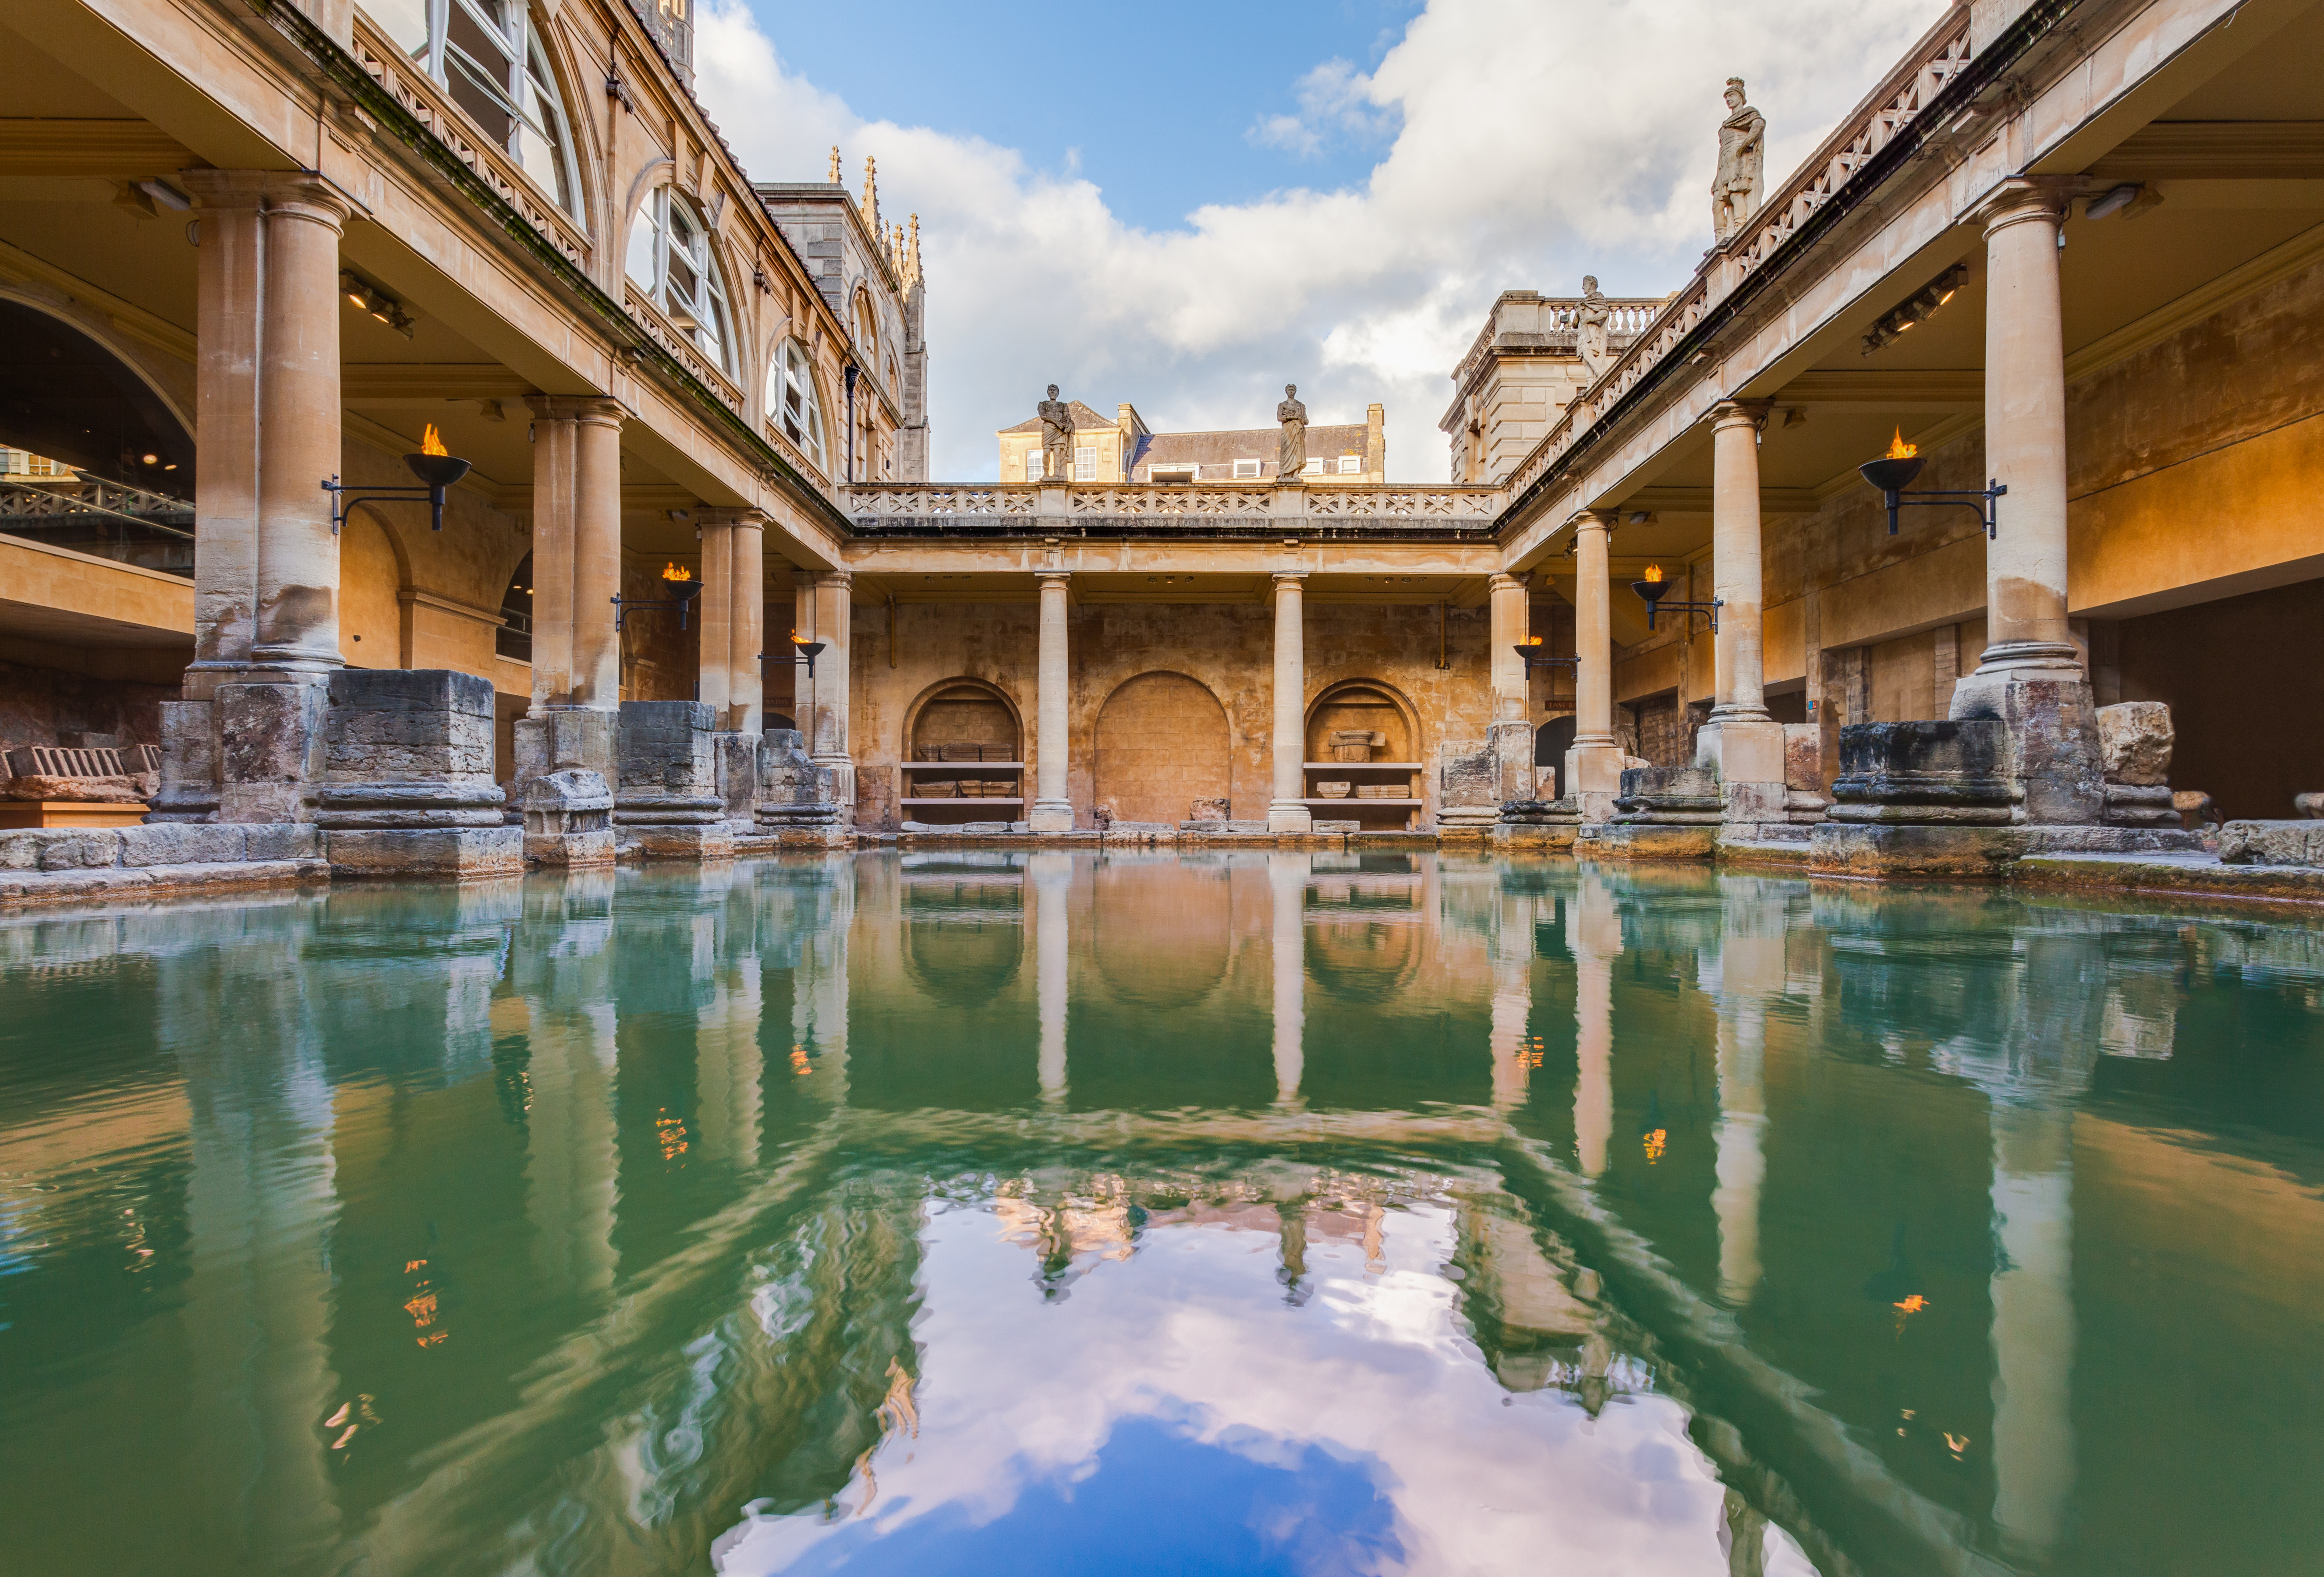 View of the Great Bath, part of the Roman Baths complex, in the city of Bath. Photo: Diego Delso, Wikimedia Commons, CC-BY-SA 3.0